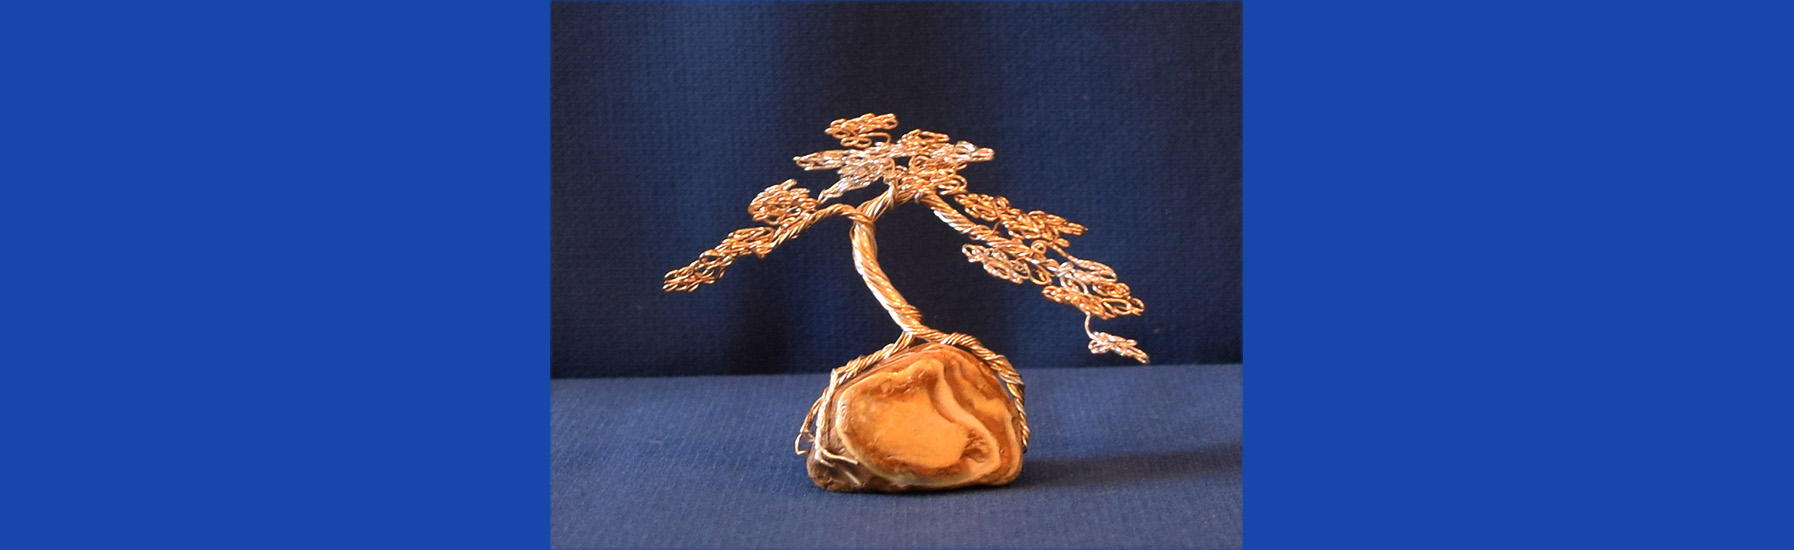 Mini Bonsai on Agate